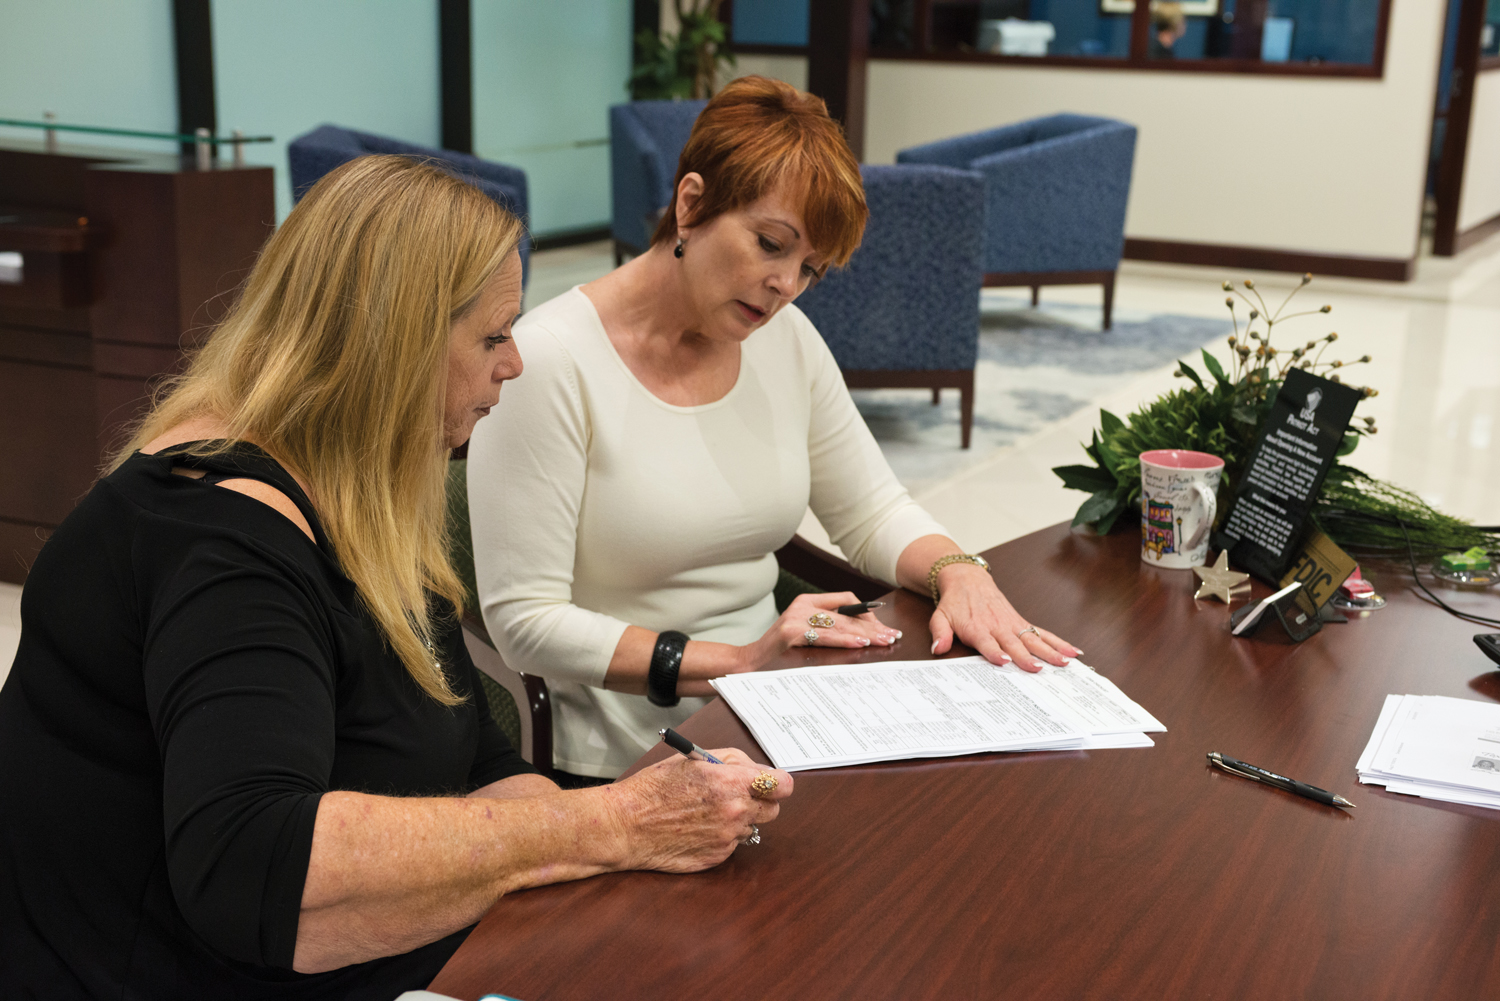 Owner of Clear Creek Equipment Rental, Sally Williams, one of the first Allegiance Bank customers, updates some documents with VP Leslee Farley.